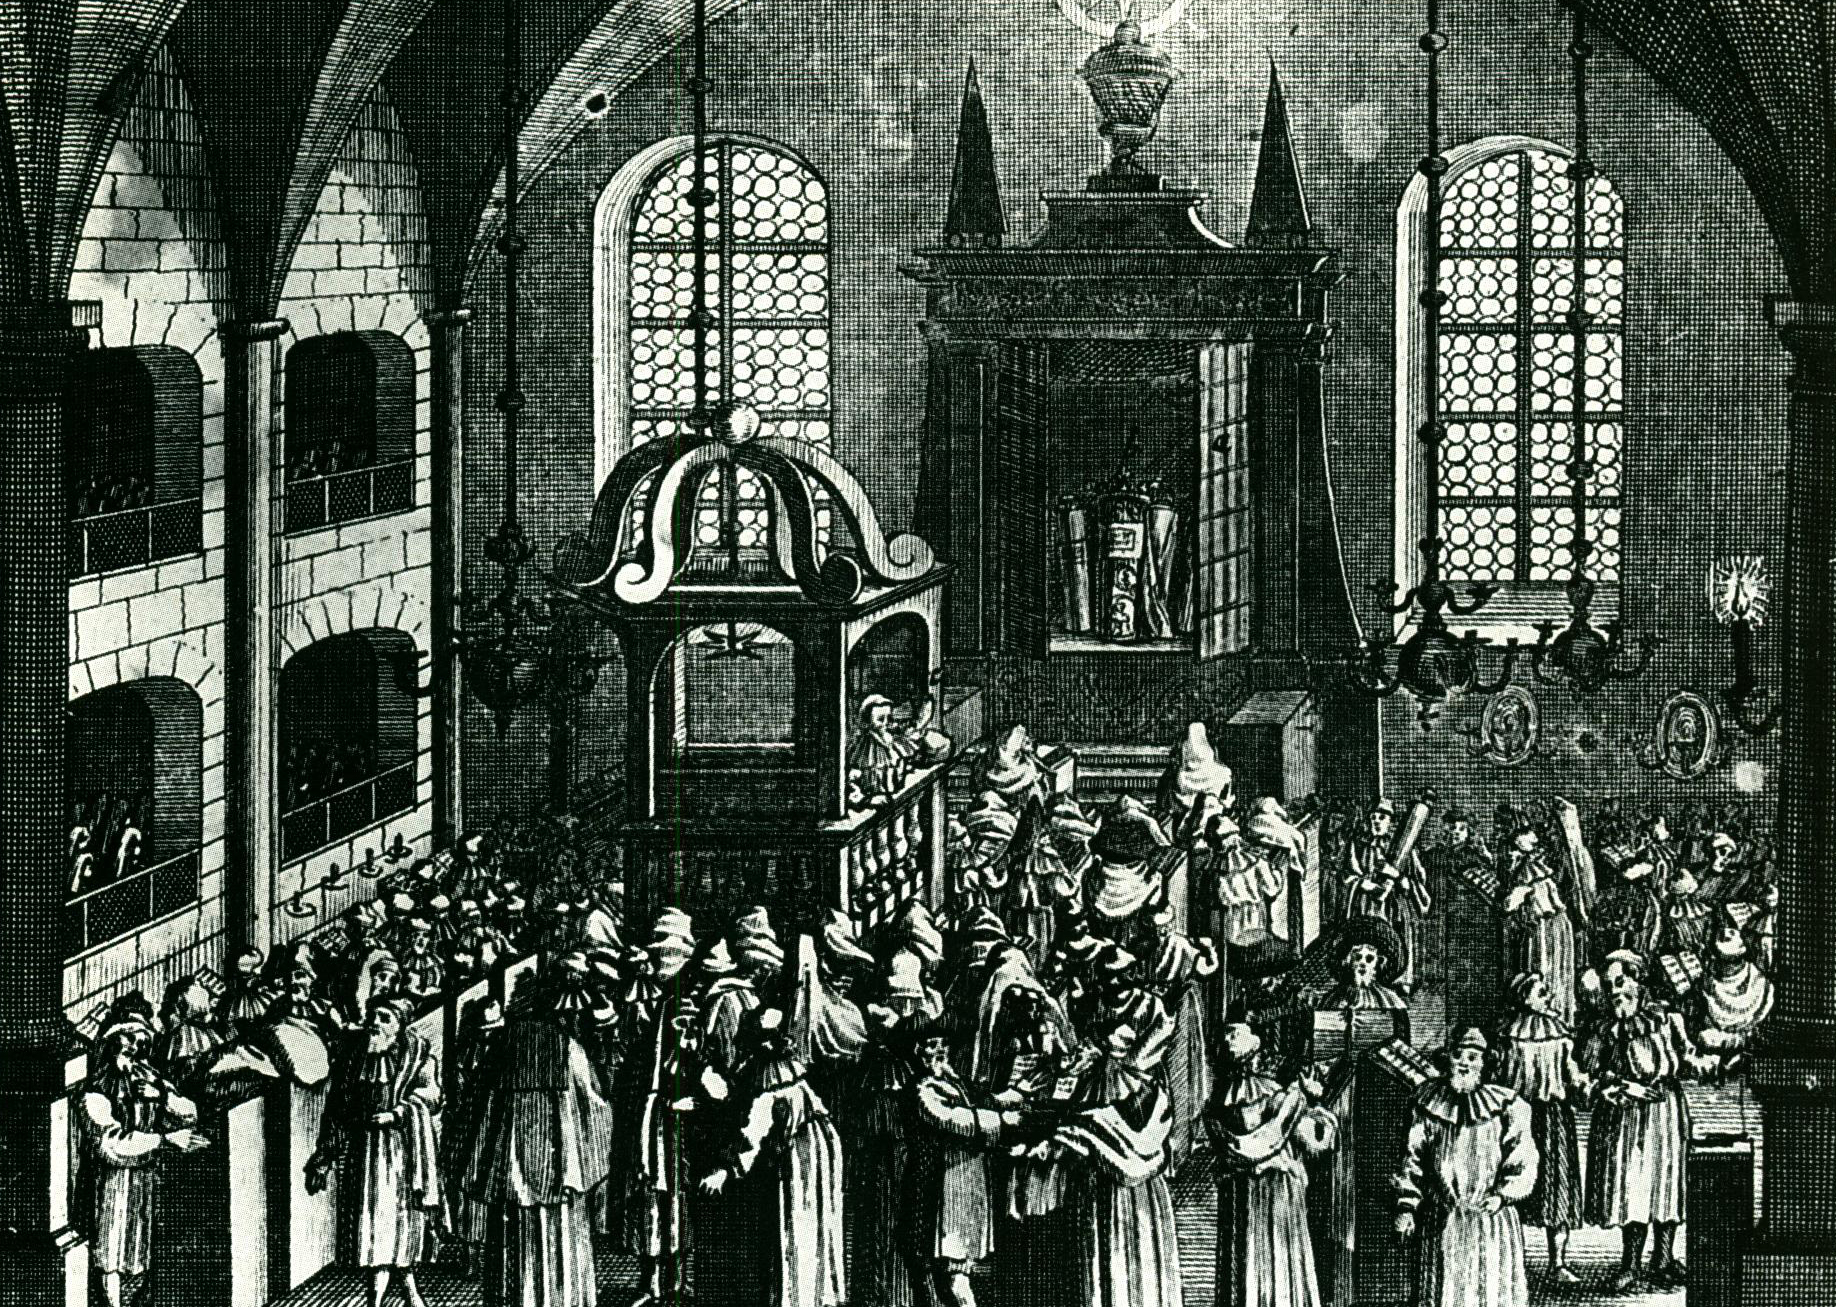 (Story of the Synagogue, pg 52) A medieval synagogue and communal hub; womens' galleries on left